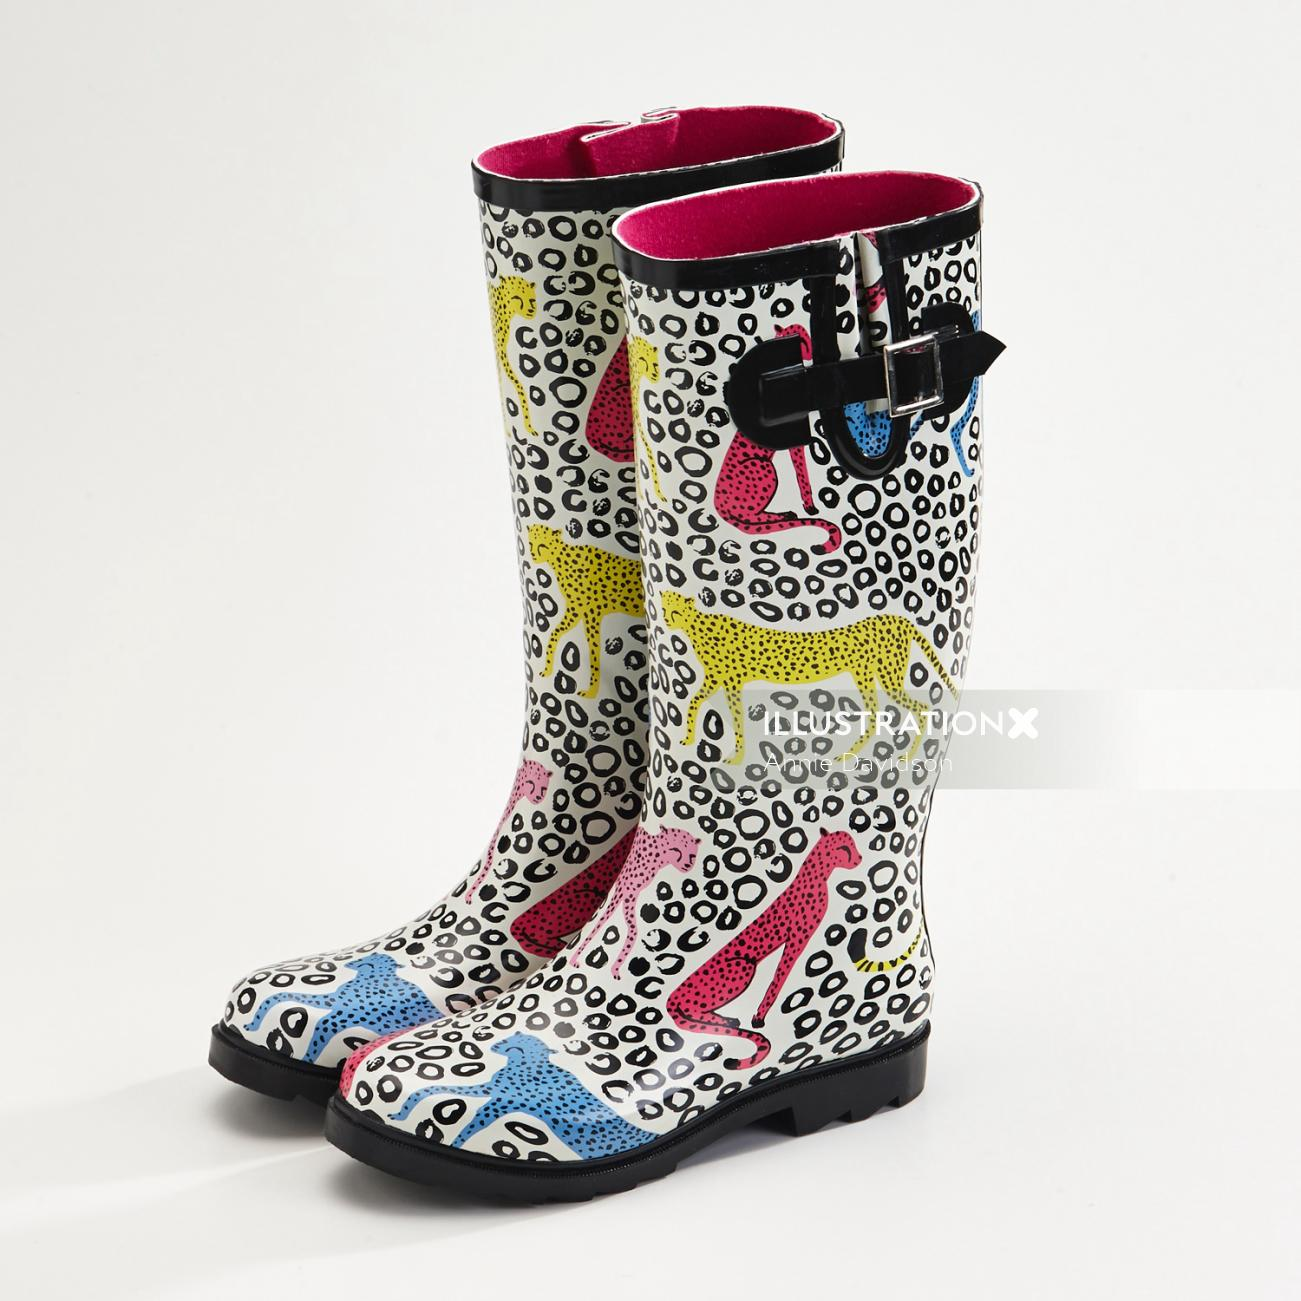 Watercolor design of Africa Gumboots